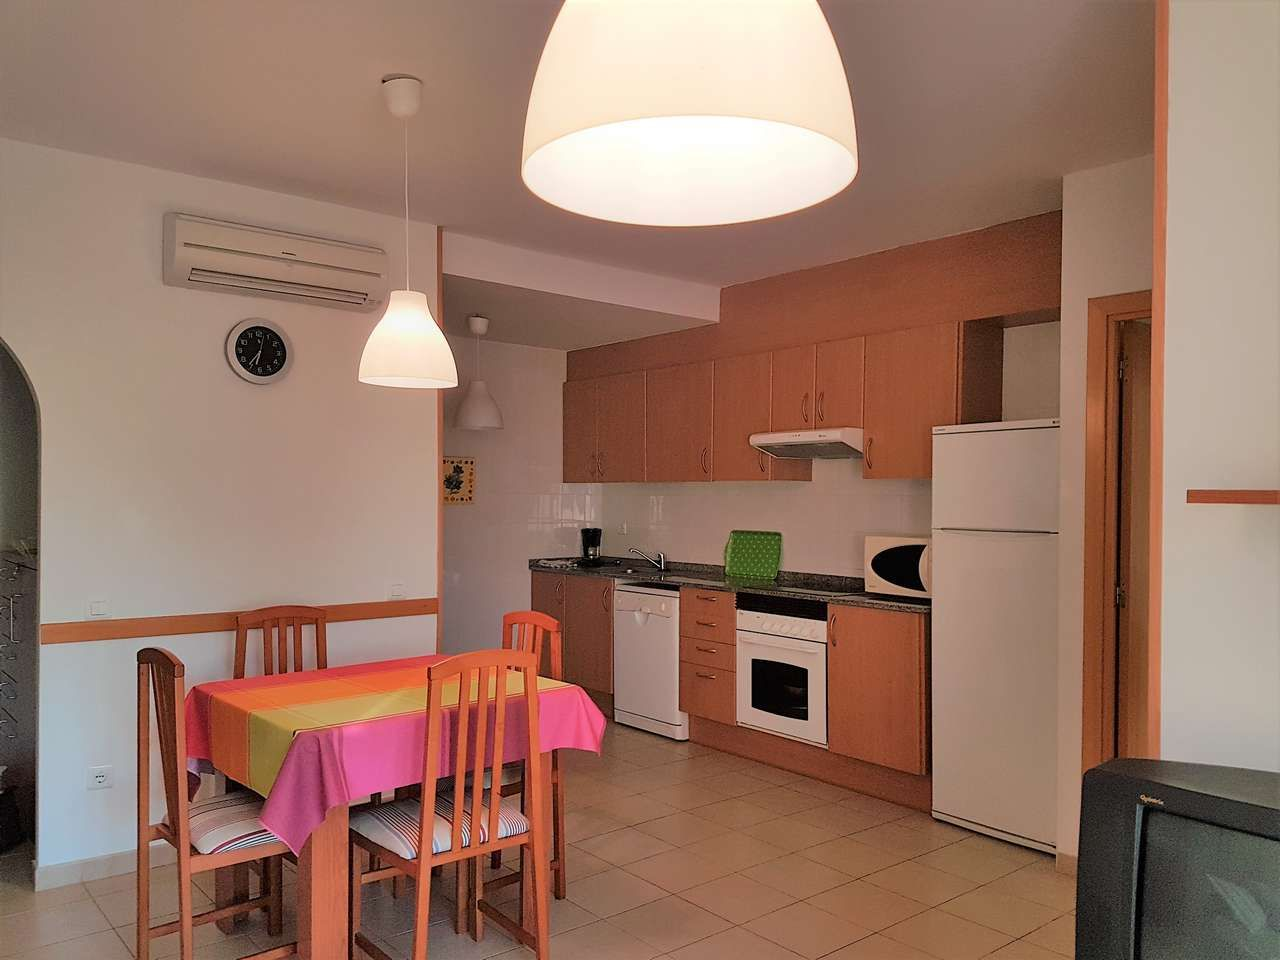 Appartement La Marquesa. Vermietung von Appartments in Riumar, Deltebre, Ebrodelta - 3